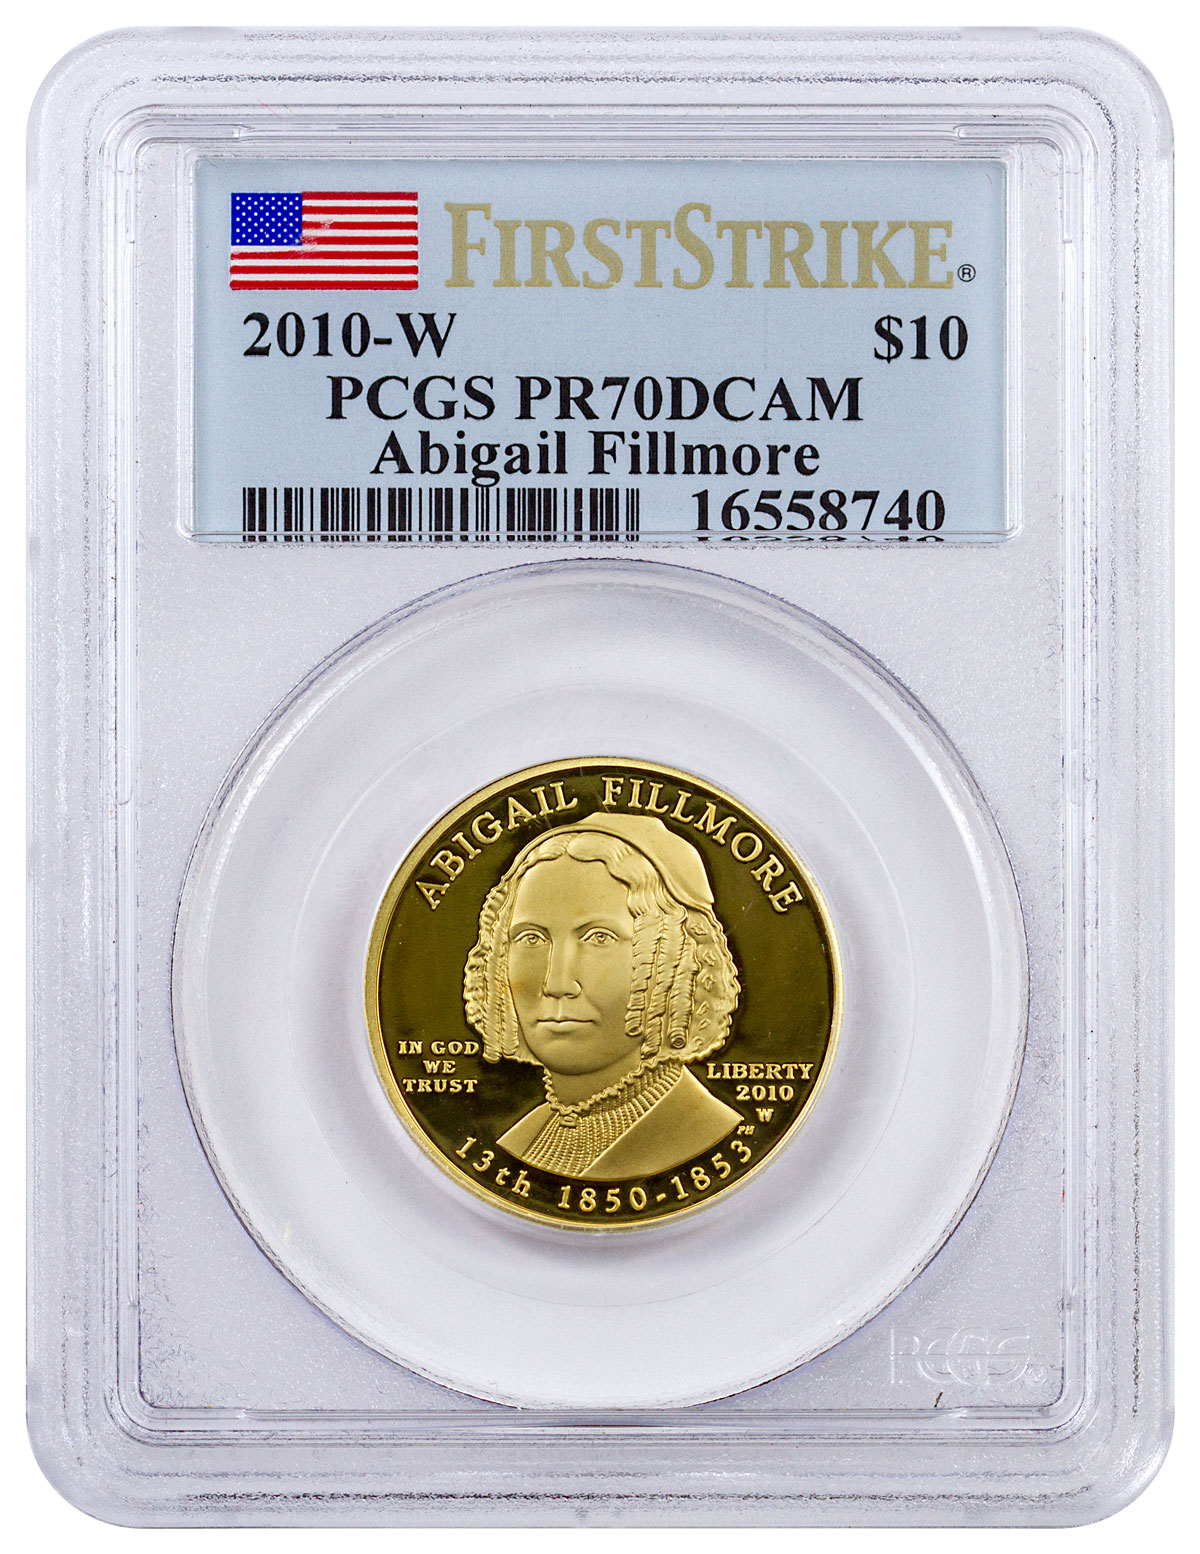 2010-W Abigail Fillmore First Spouse Gold Proof $10 PCGS PR70 DCAM FS